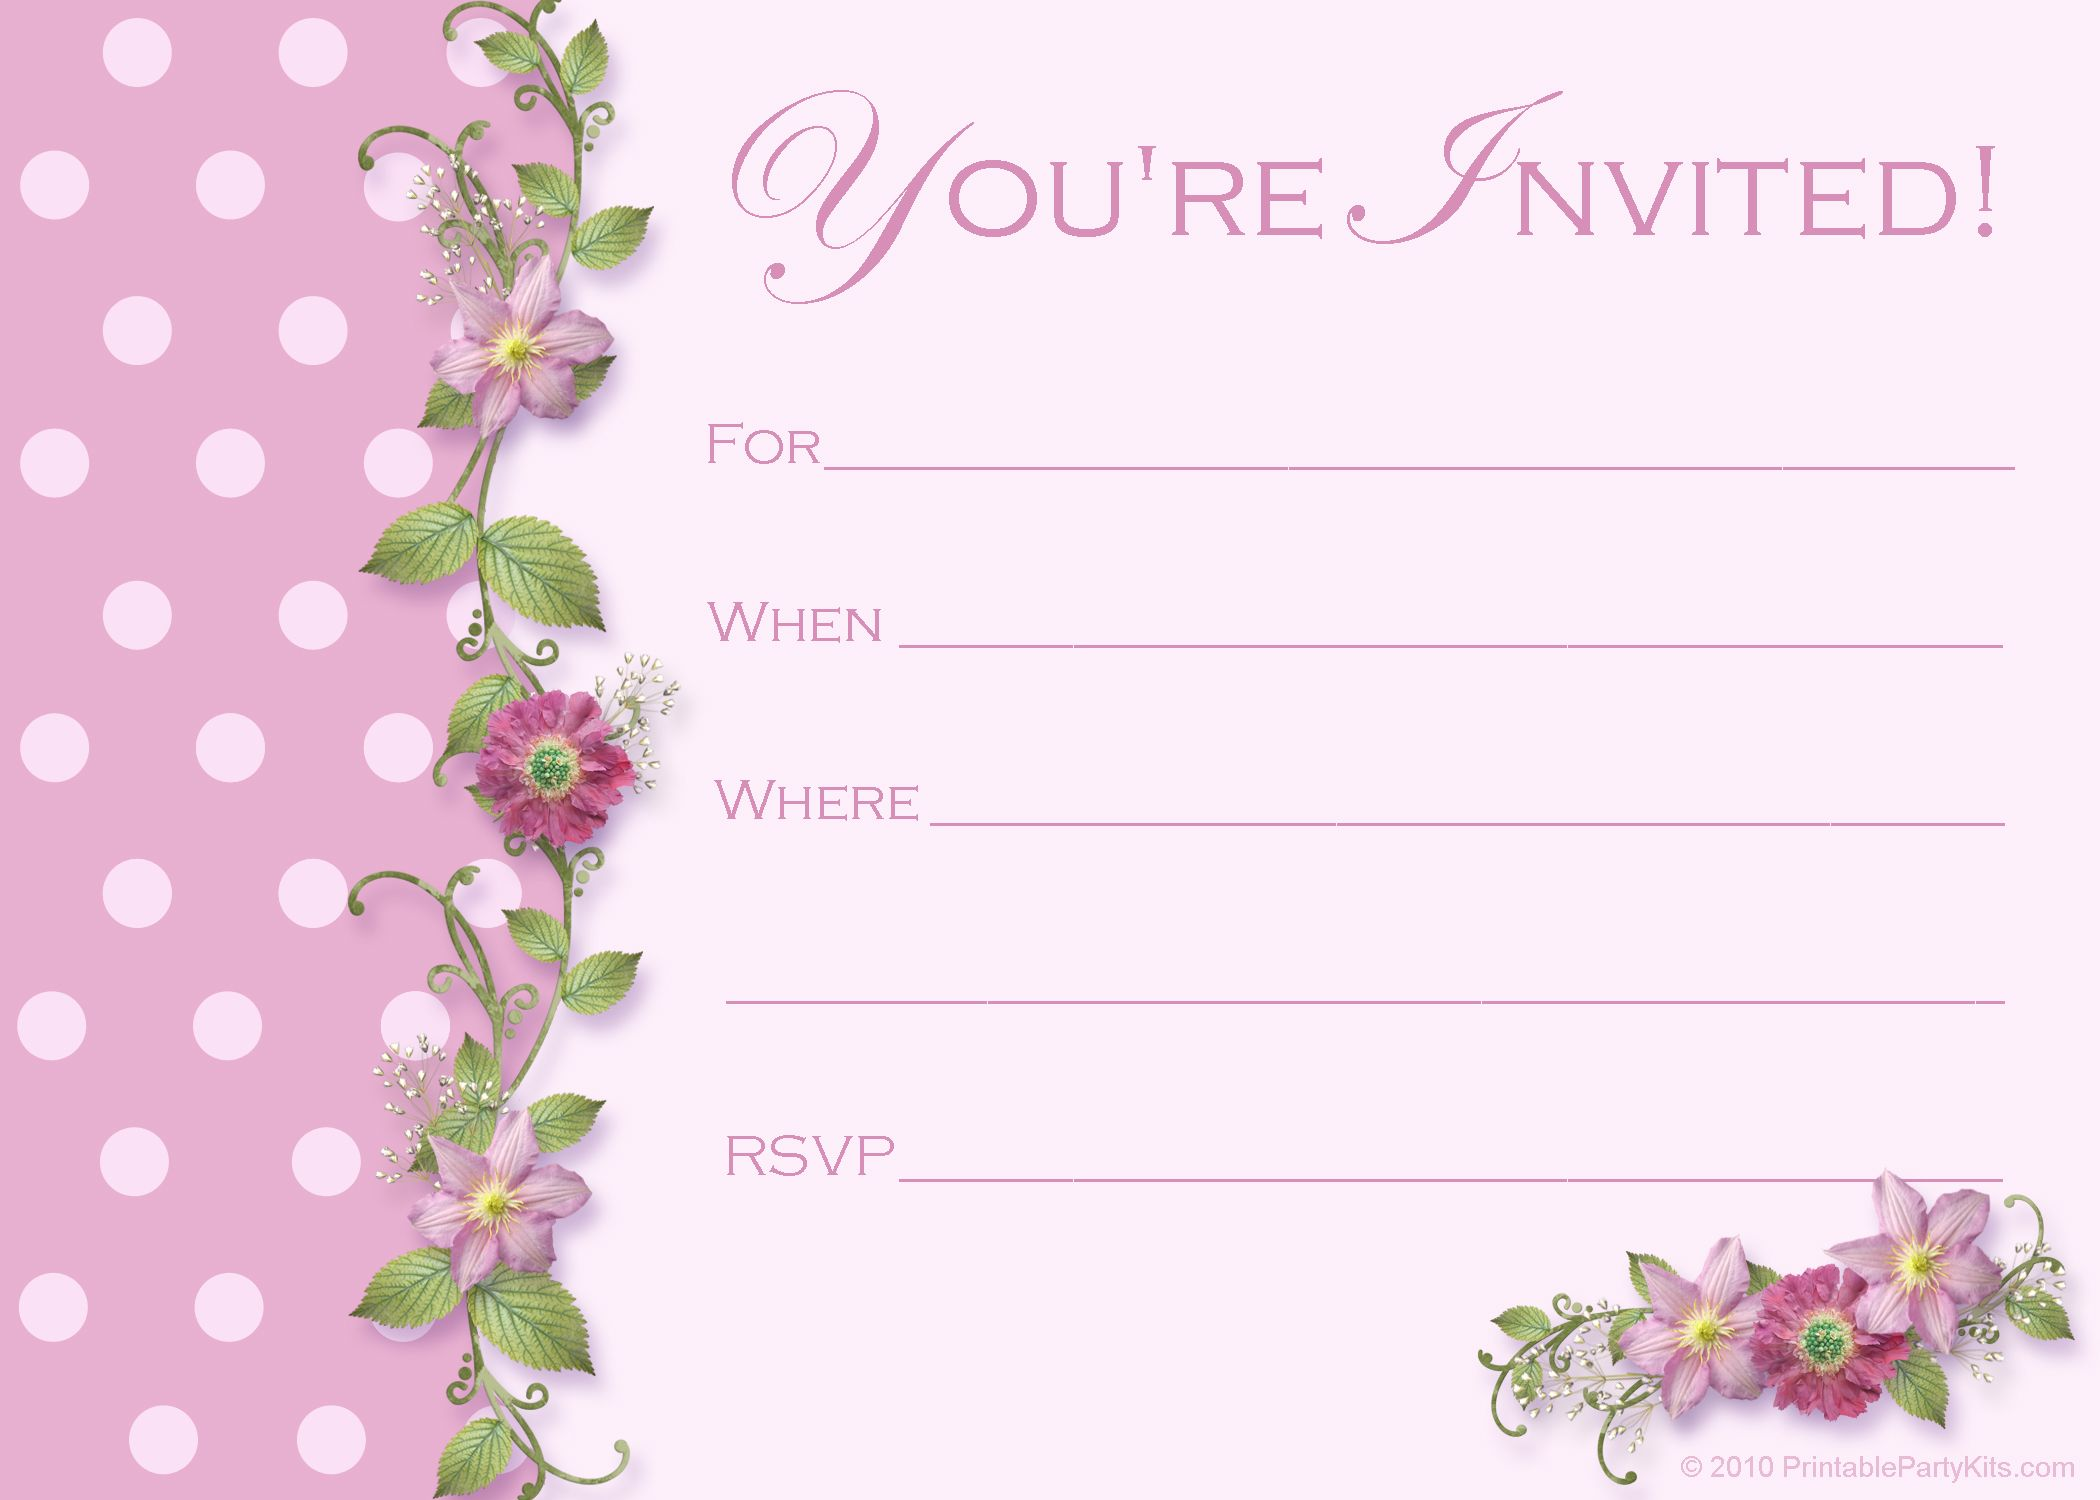 Image For Blank Birthday Invitations Templates Parties Weddings - Birthday party invitation cards to print